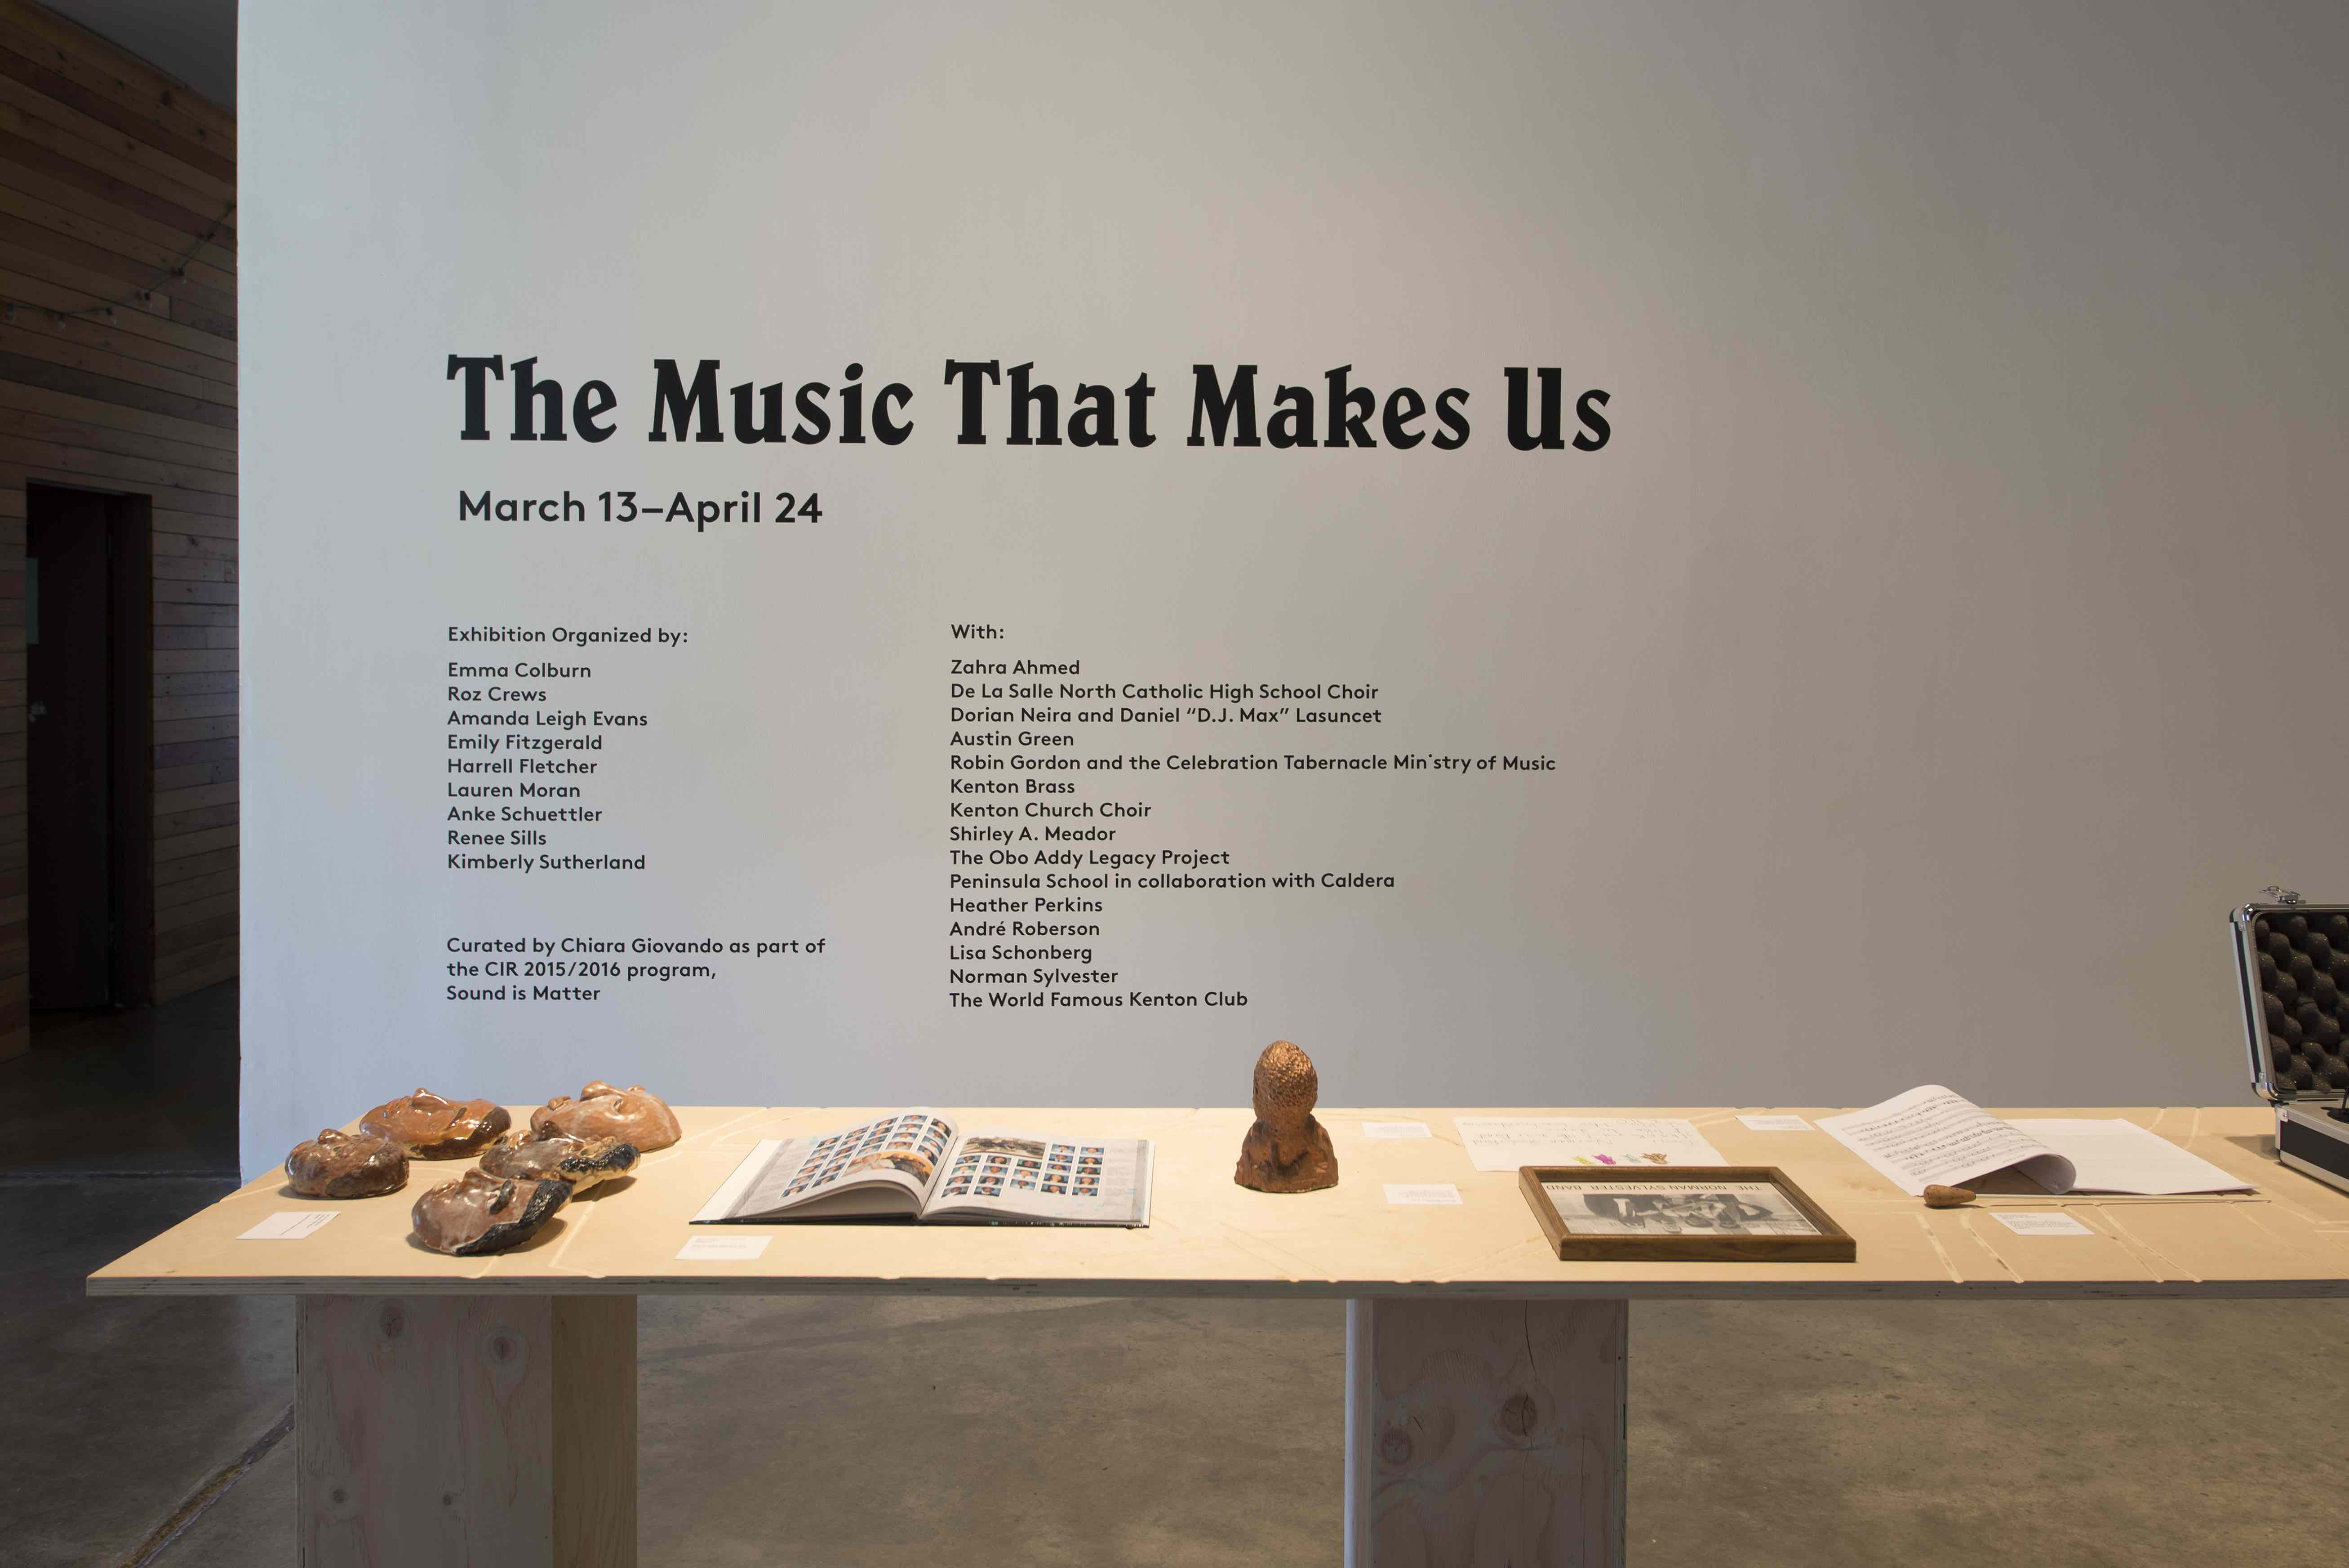 The Music That makes Us, Harrell Fletcher and the PSU MFA Social Practice Department